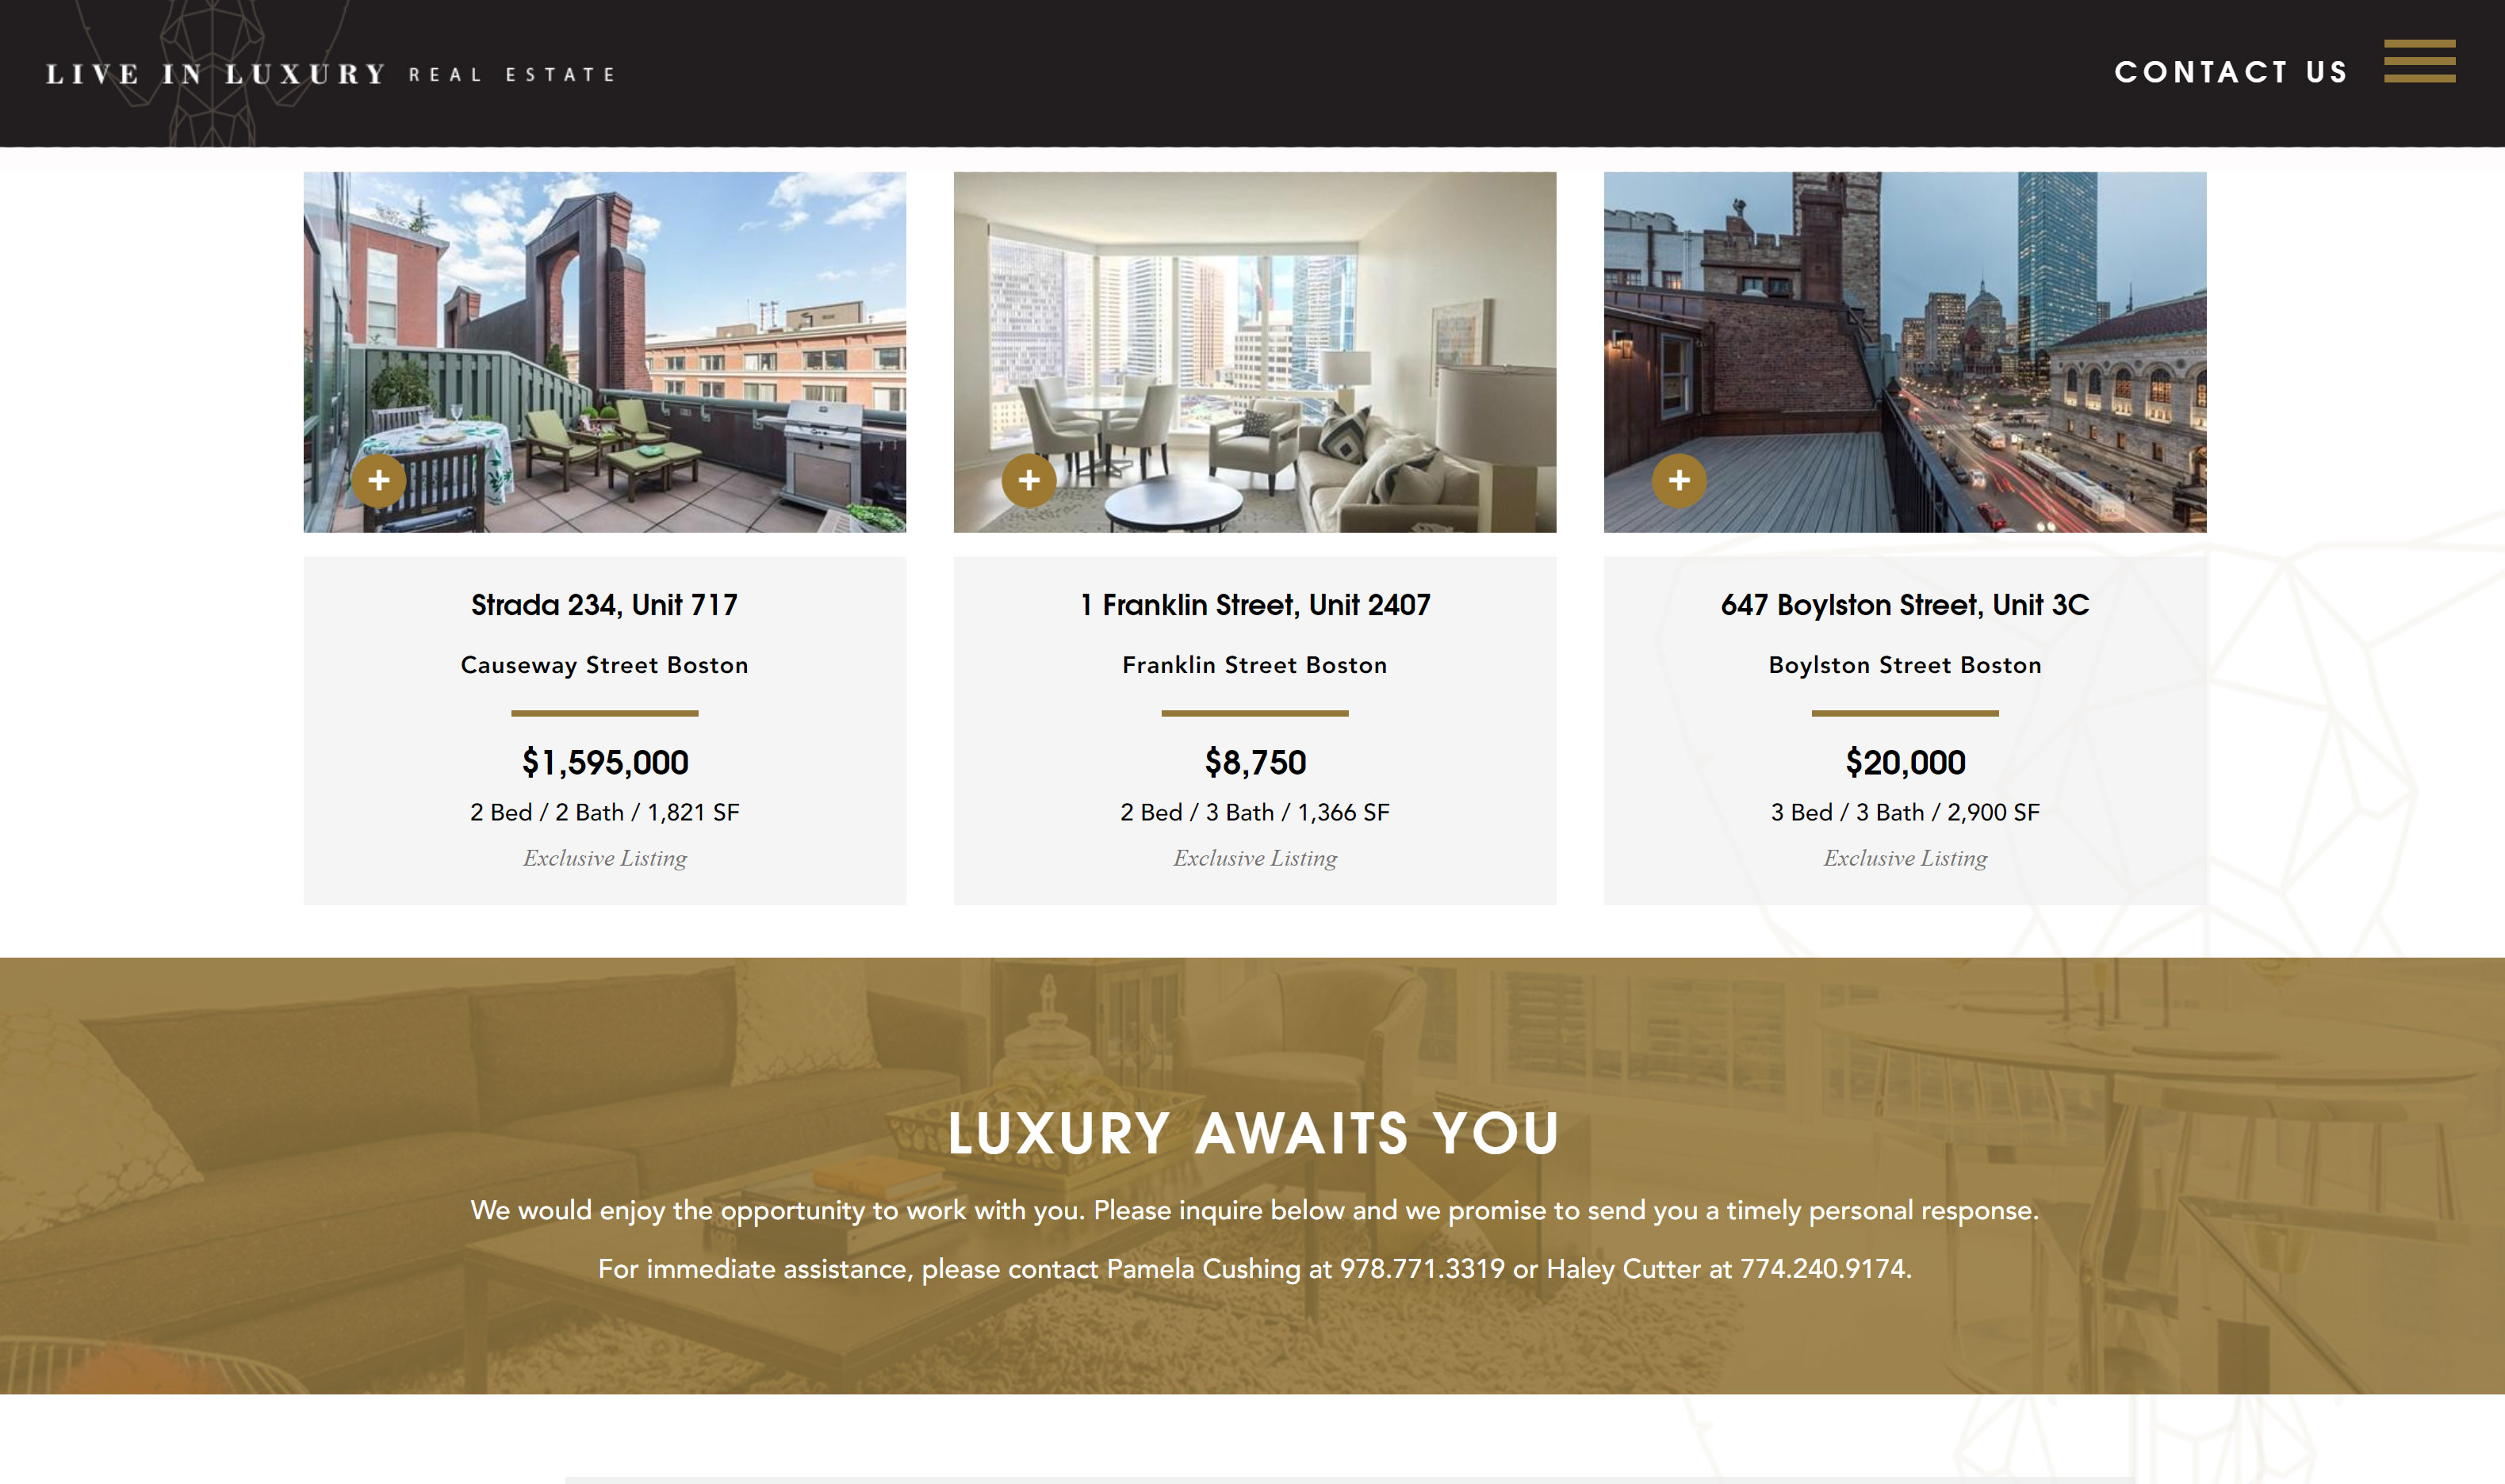 Sarah-Cas-Graphic-Design-Website-Design-Live-In-Luxury-Real-Estate-4